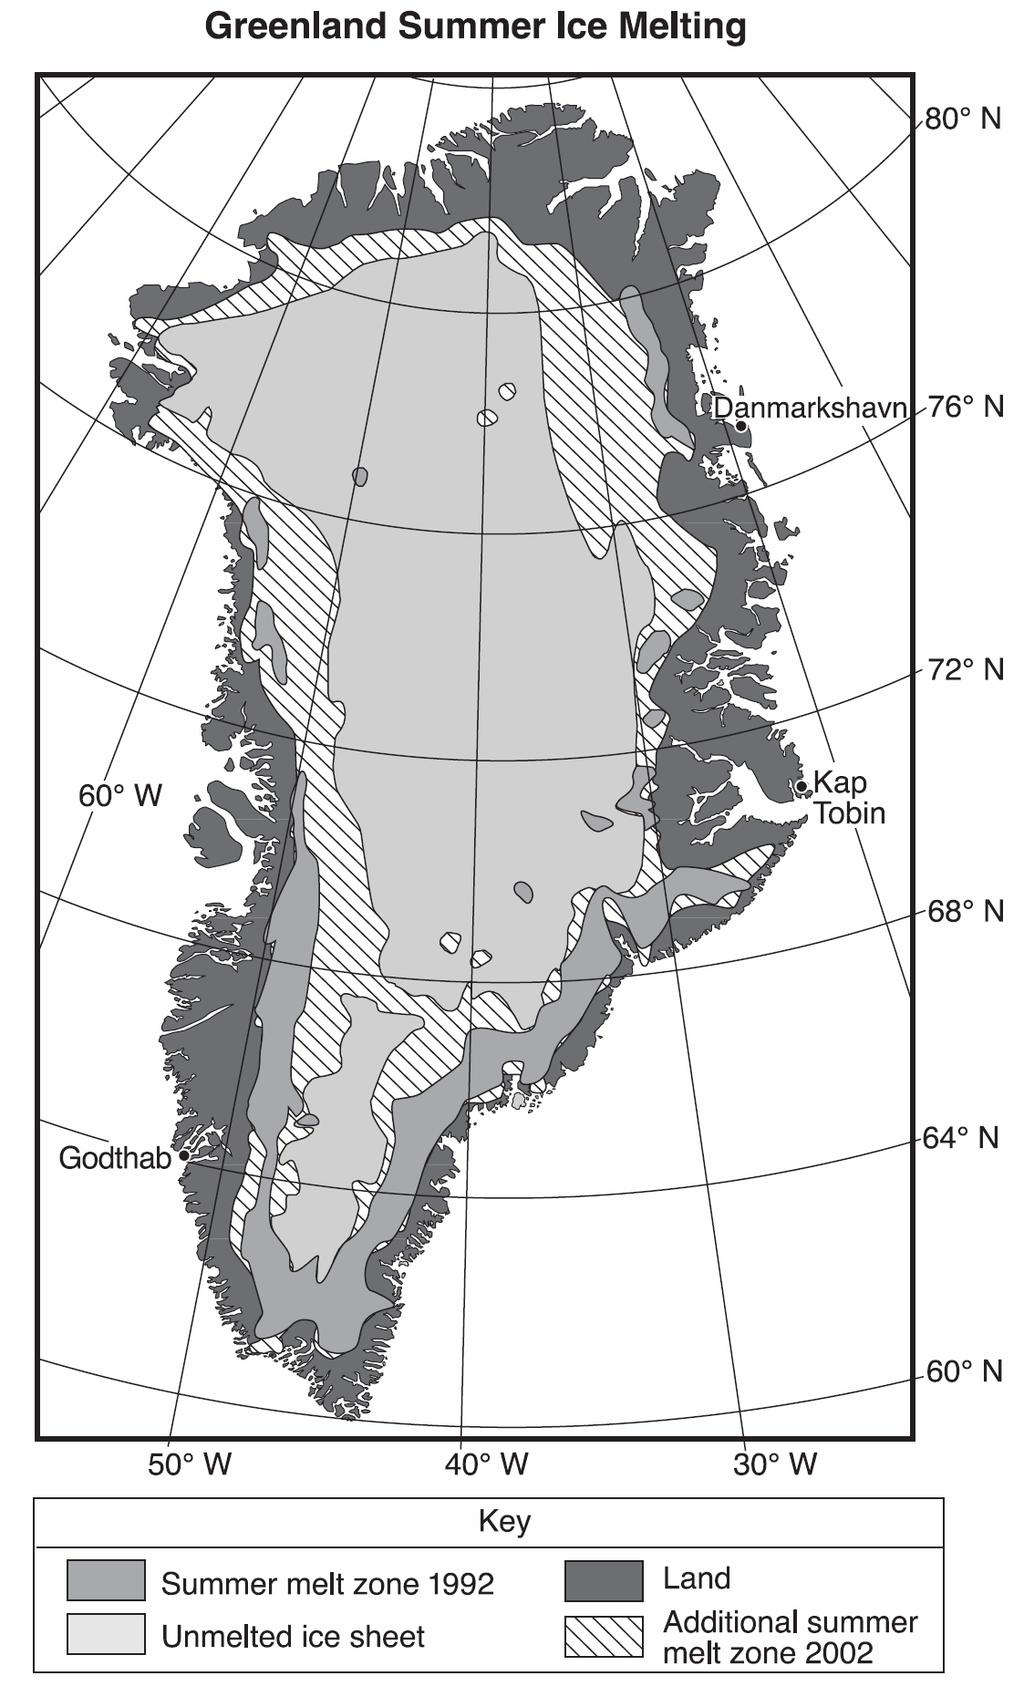 29. Base your answer to the following question on the following map and passage. The map shows the extent of summer ice-melt zones on Greenland in 1992 and 2002.